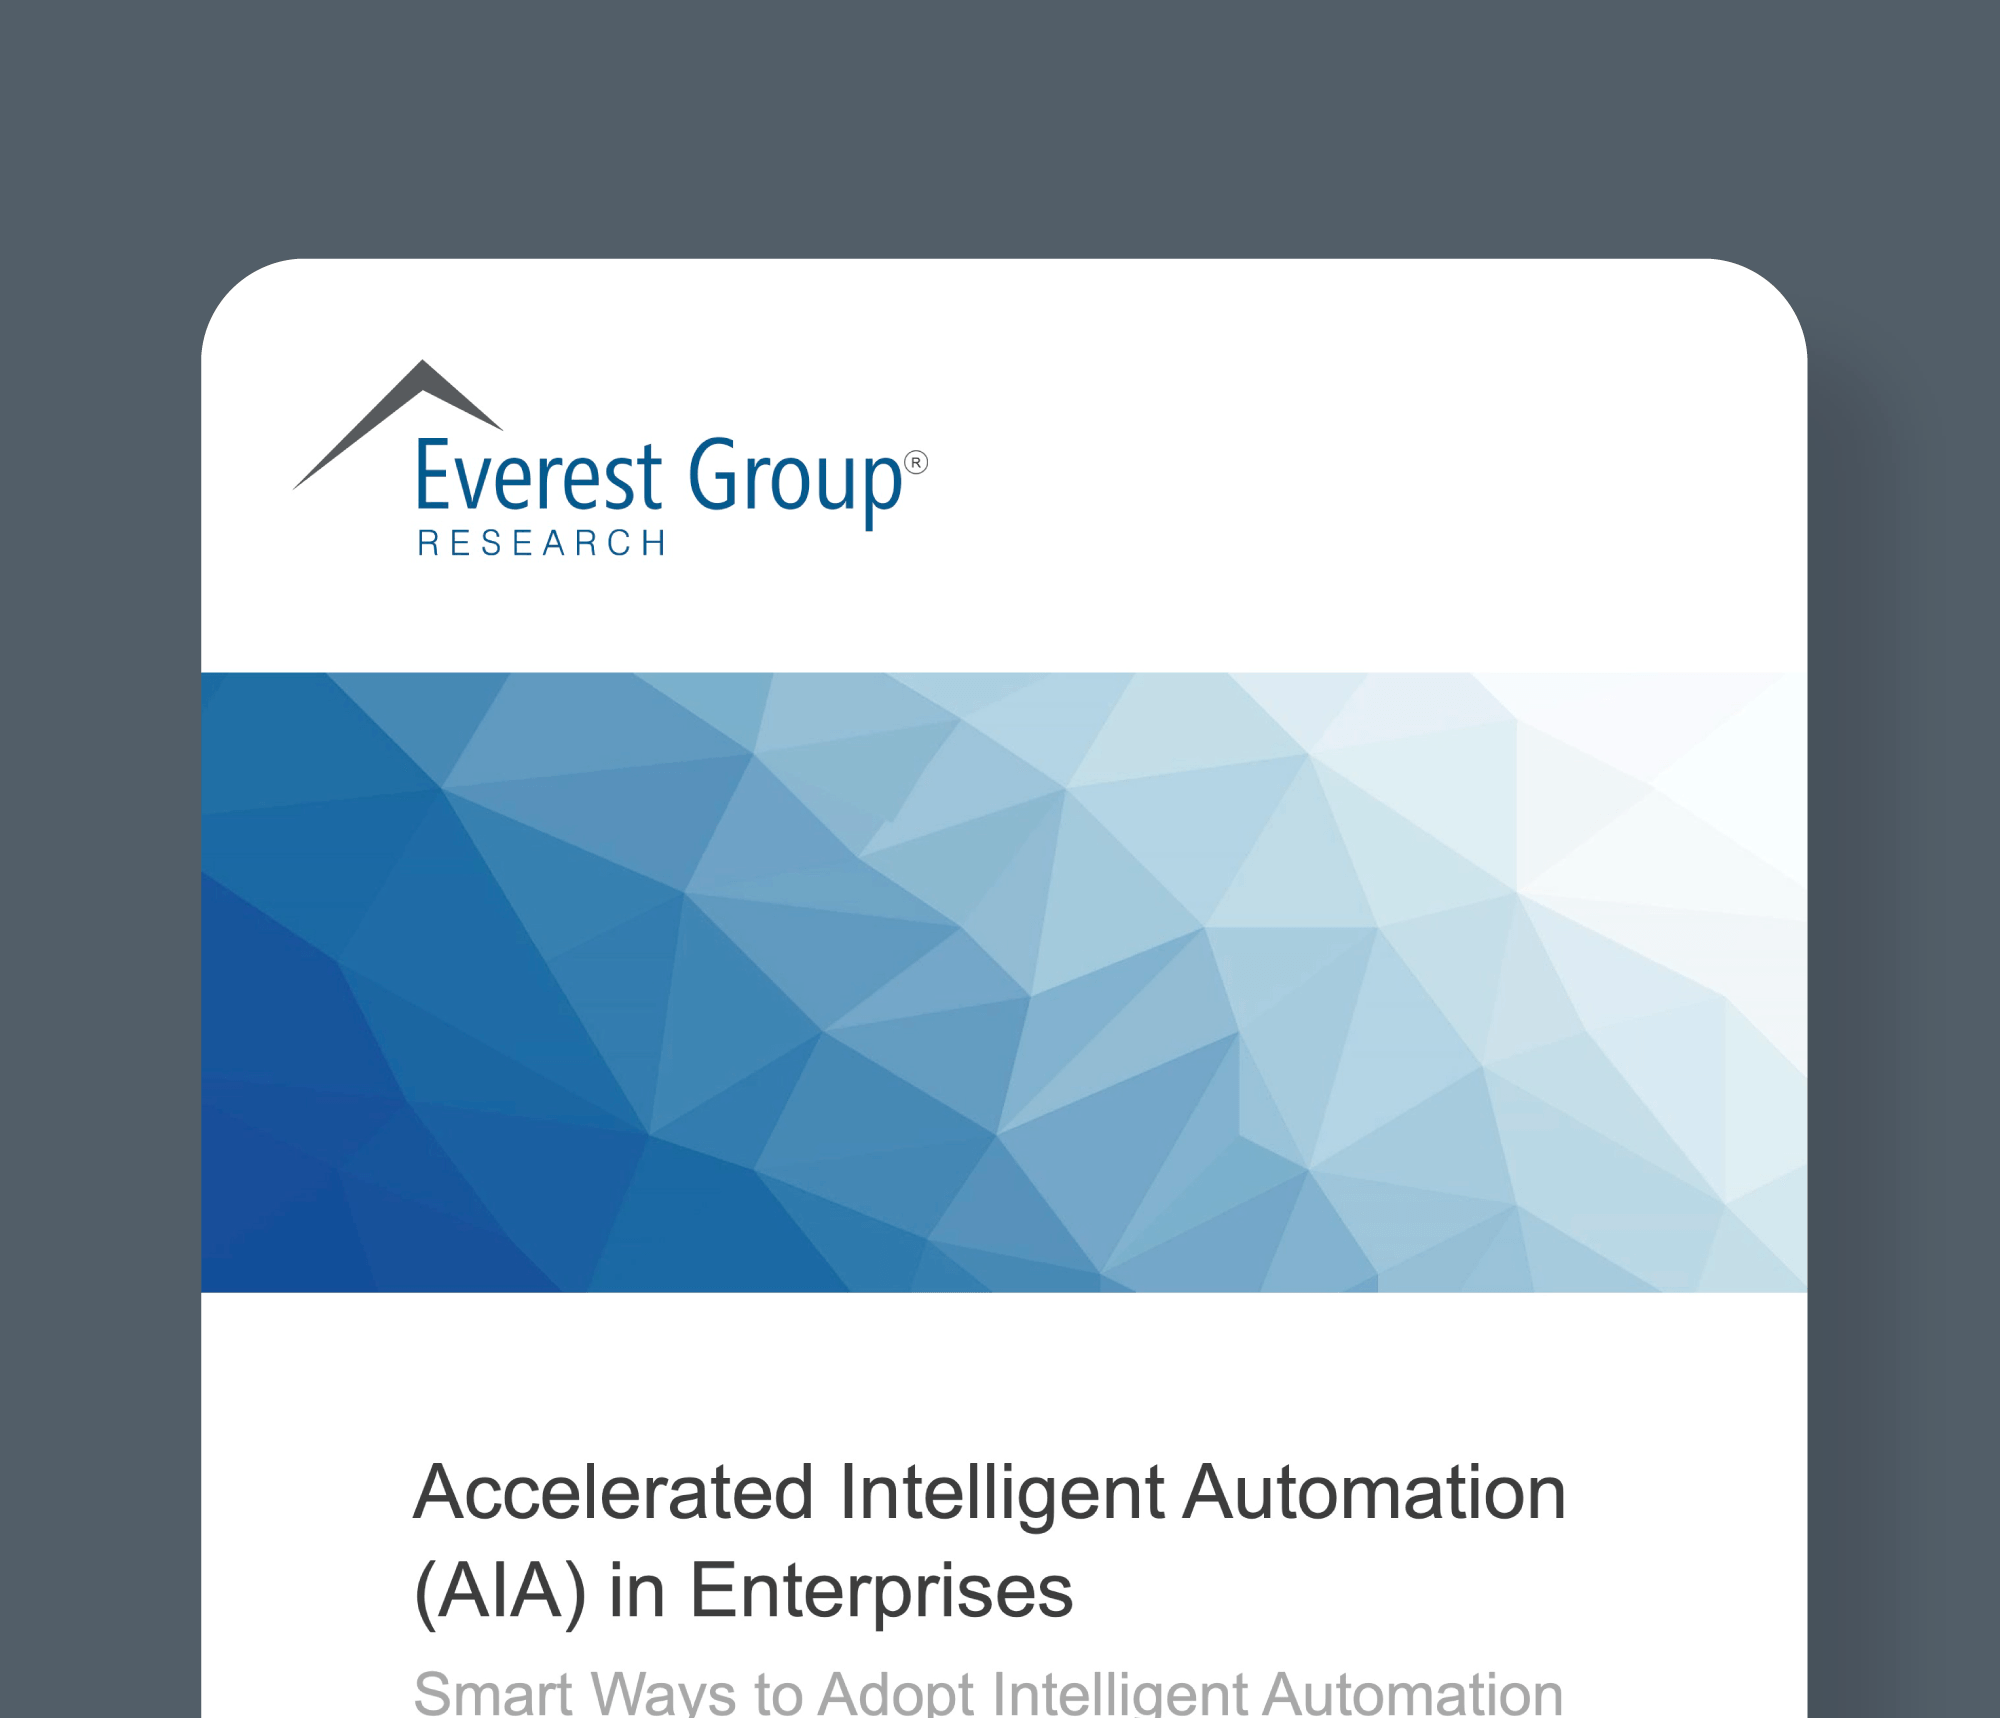 everest accelerated intelligent automation